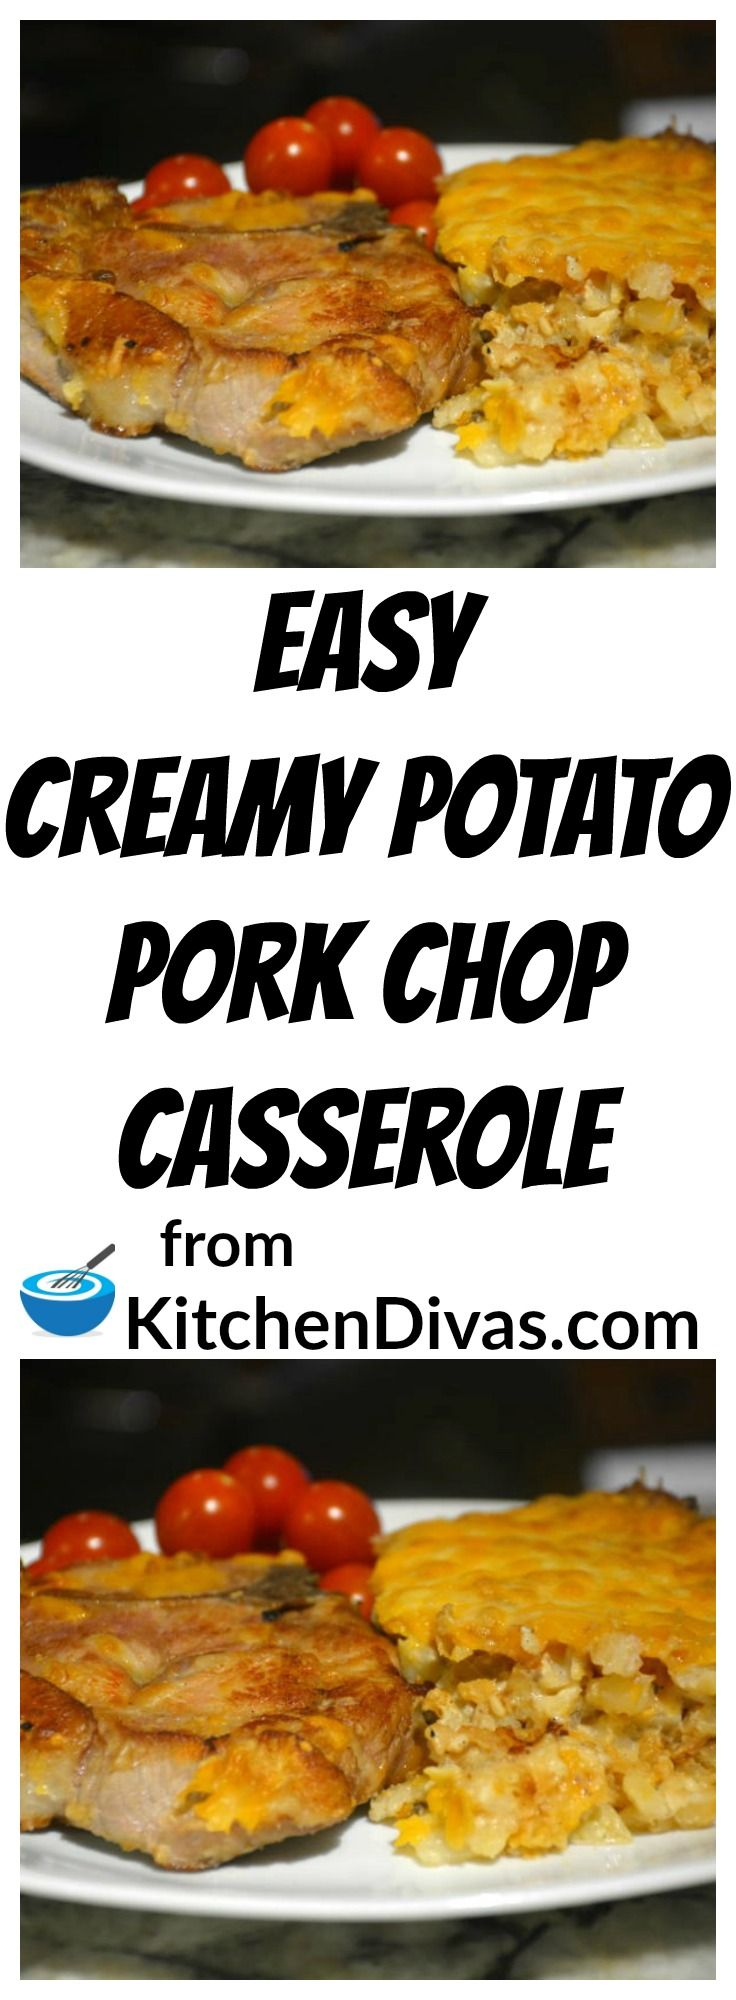 This is a delicious one pan meal to serve any night of the week. Both creamy and cheesy, how can you go wrong? Easy Creamy Potato Pork Chop Casserole is a recipe you will make over and over again!